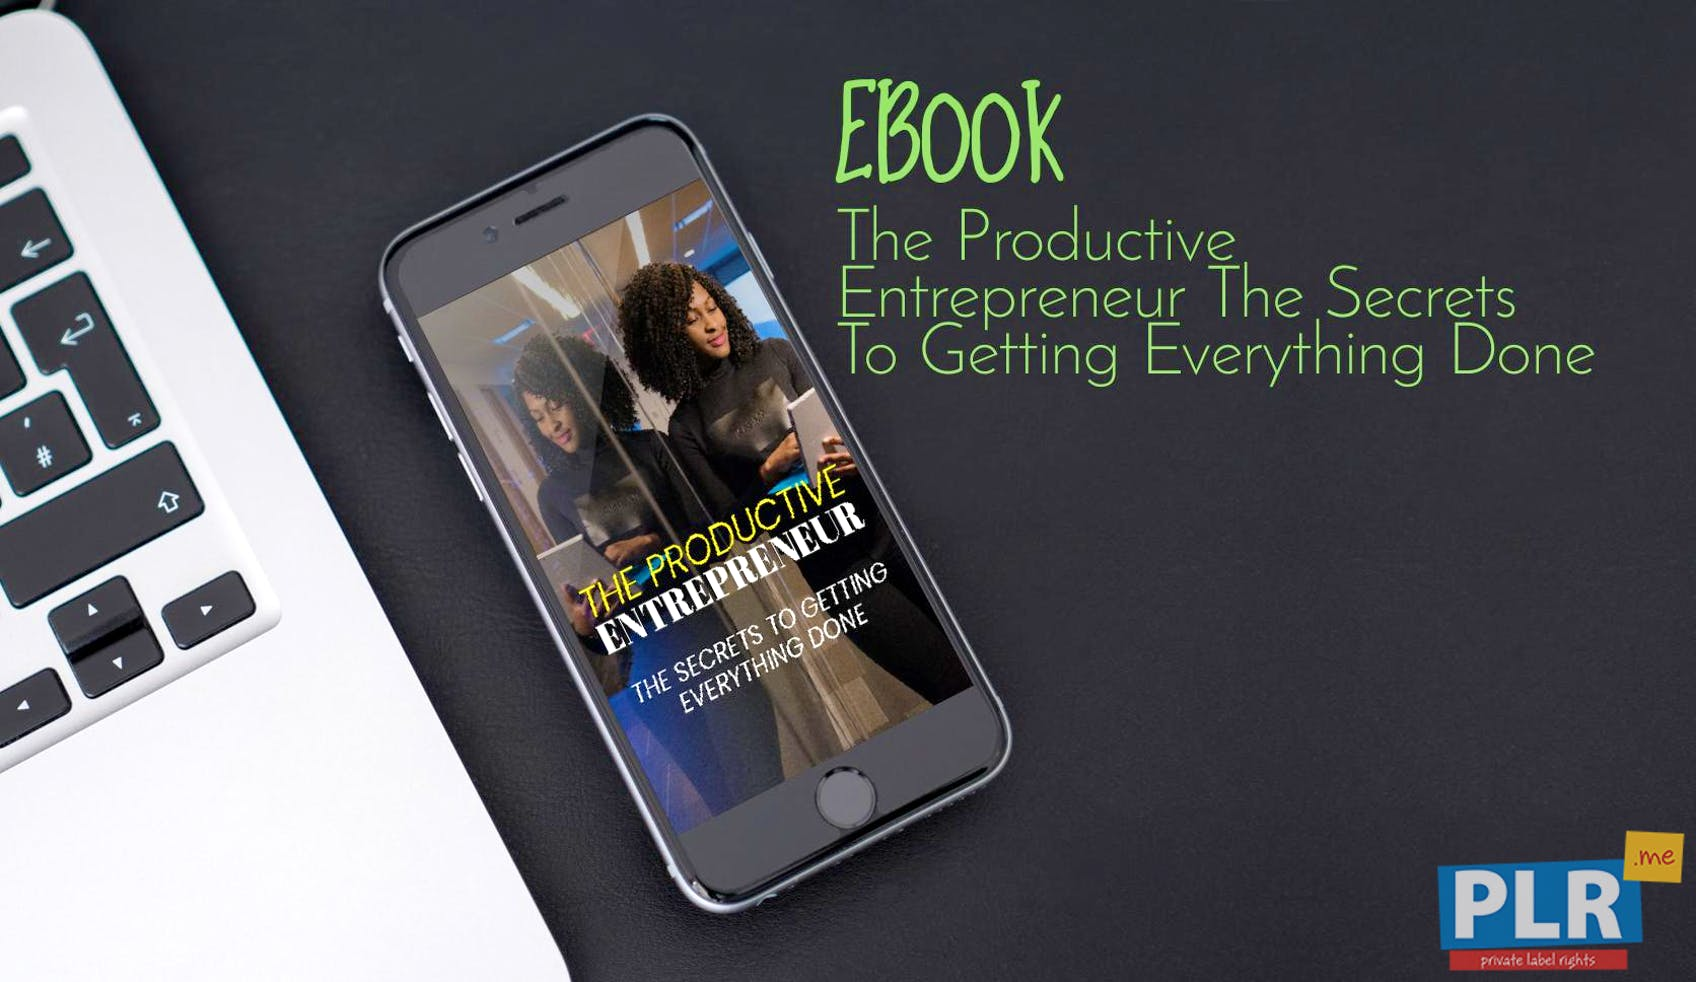 The Productive Entrepreneur The Secrets To Getting Everything Done